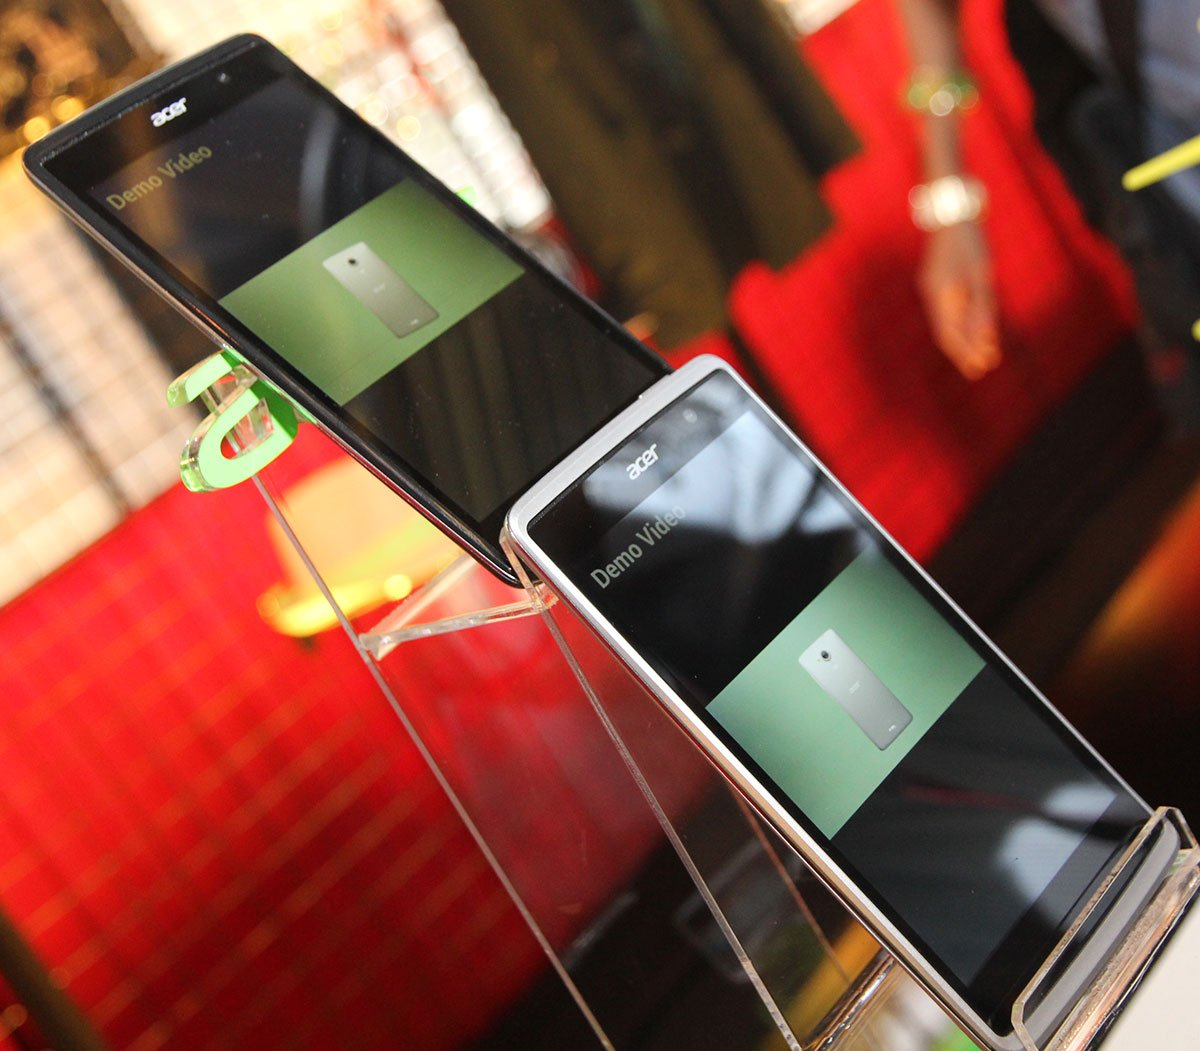 Acer launches 3 new phones - Liquid X1, Jade and Z500 11